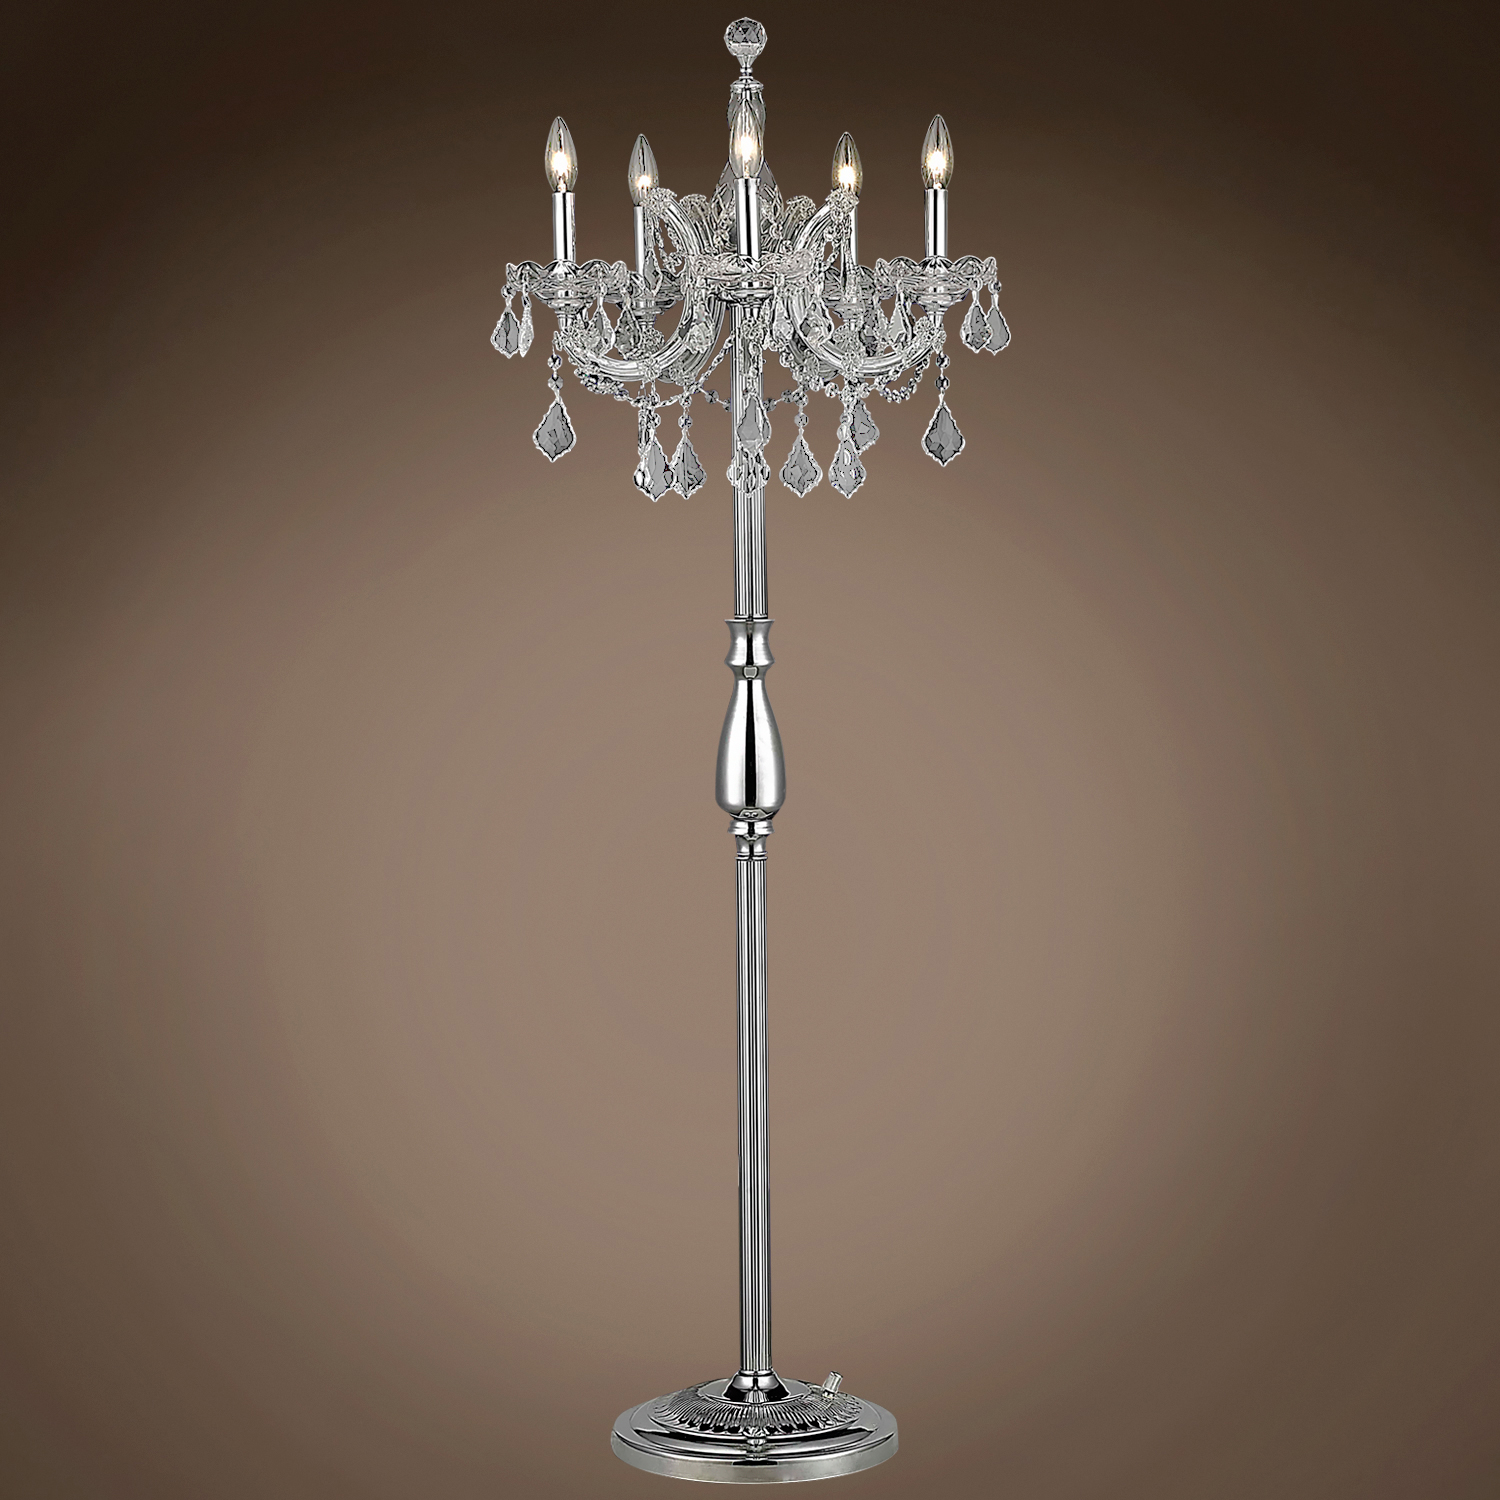 Maria theresa chandeliers european style light fixtures we got jm maria theresa 5 light 19 arubaitofo Choice Image